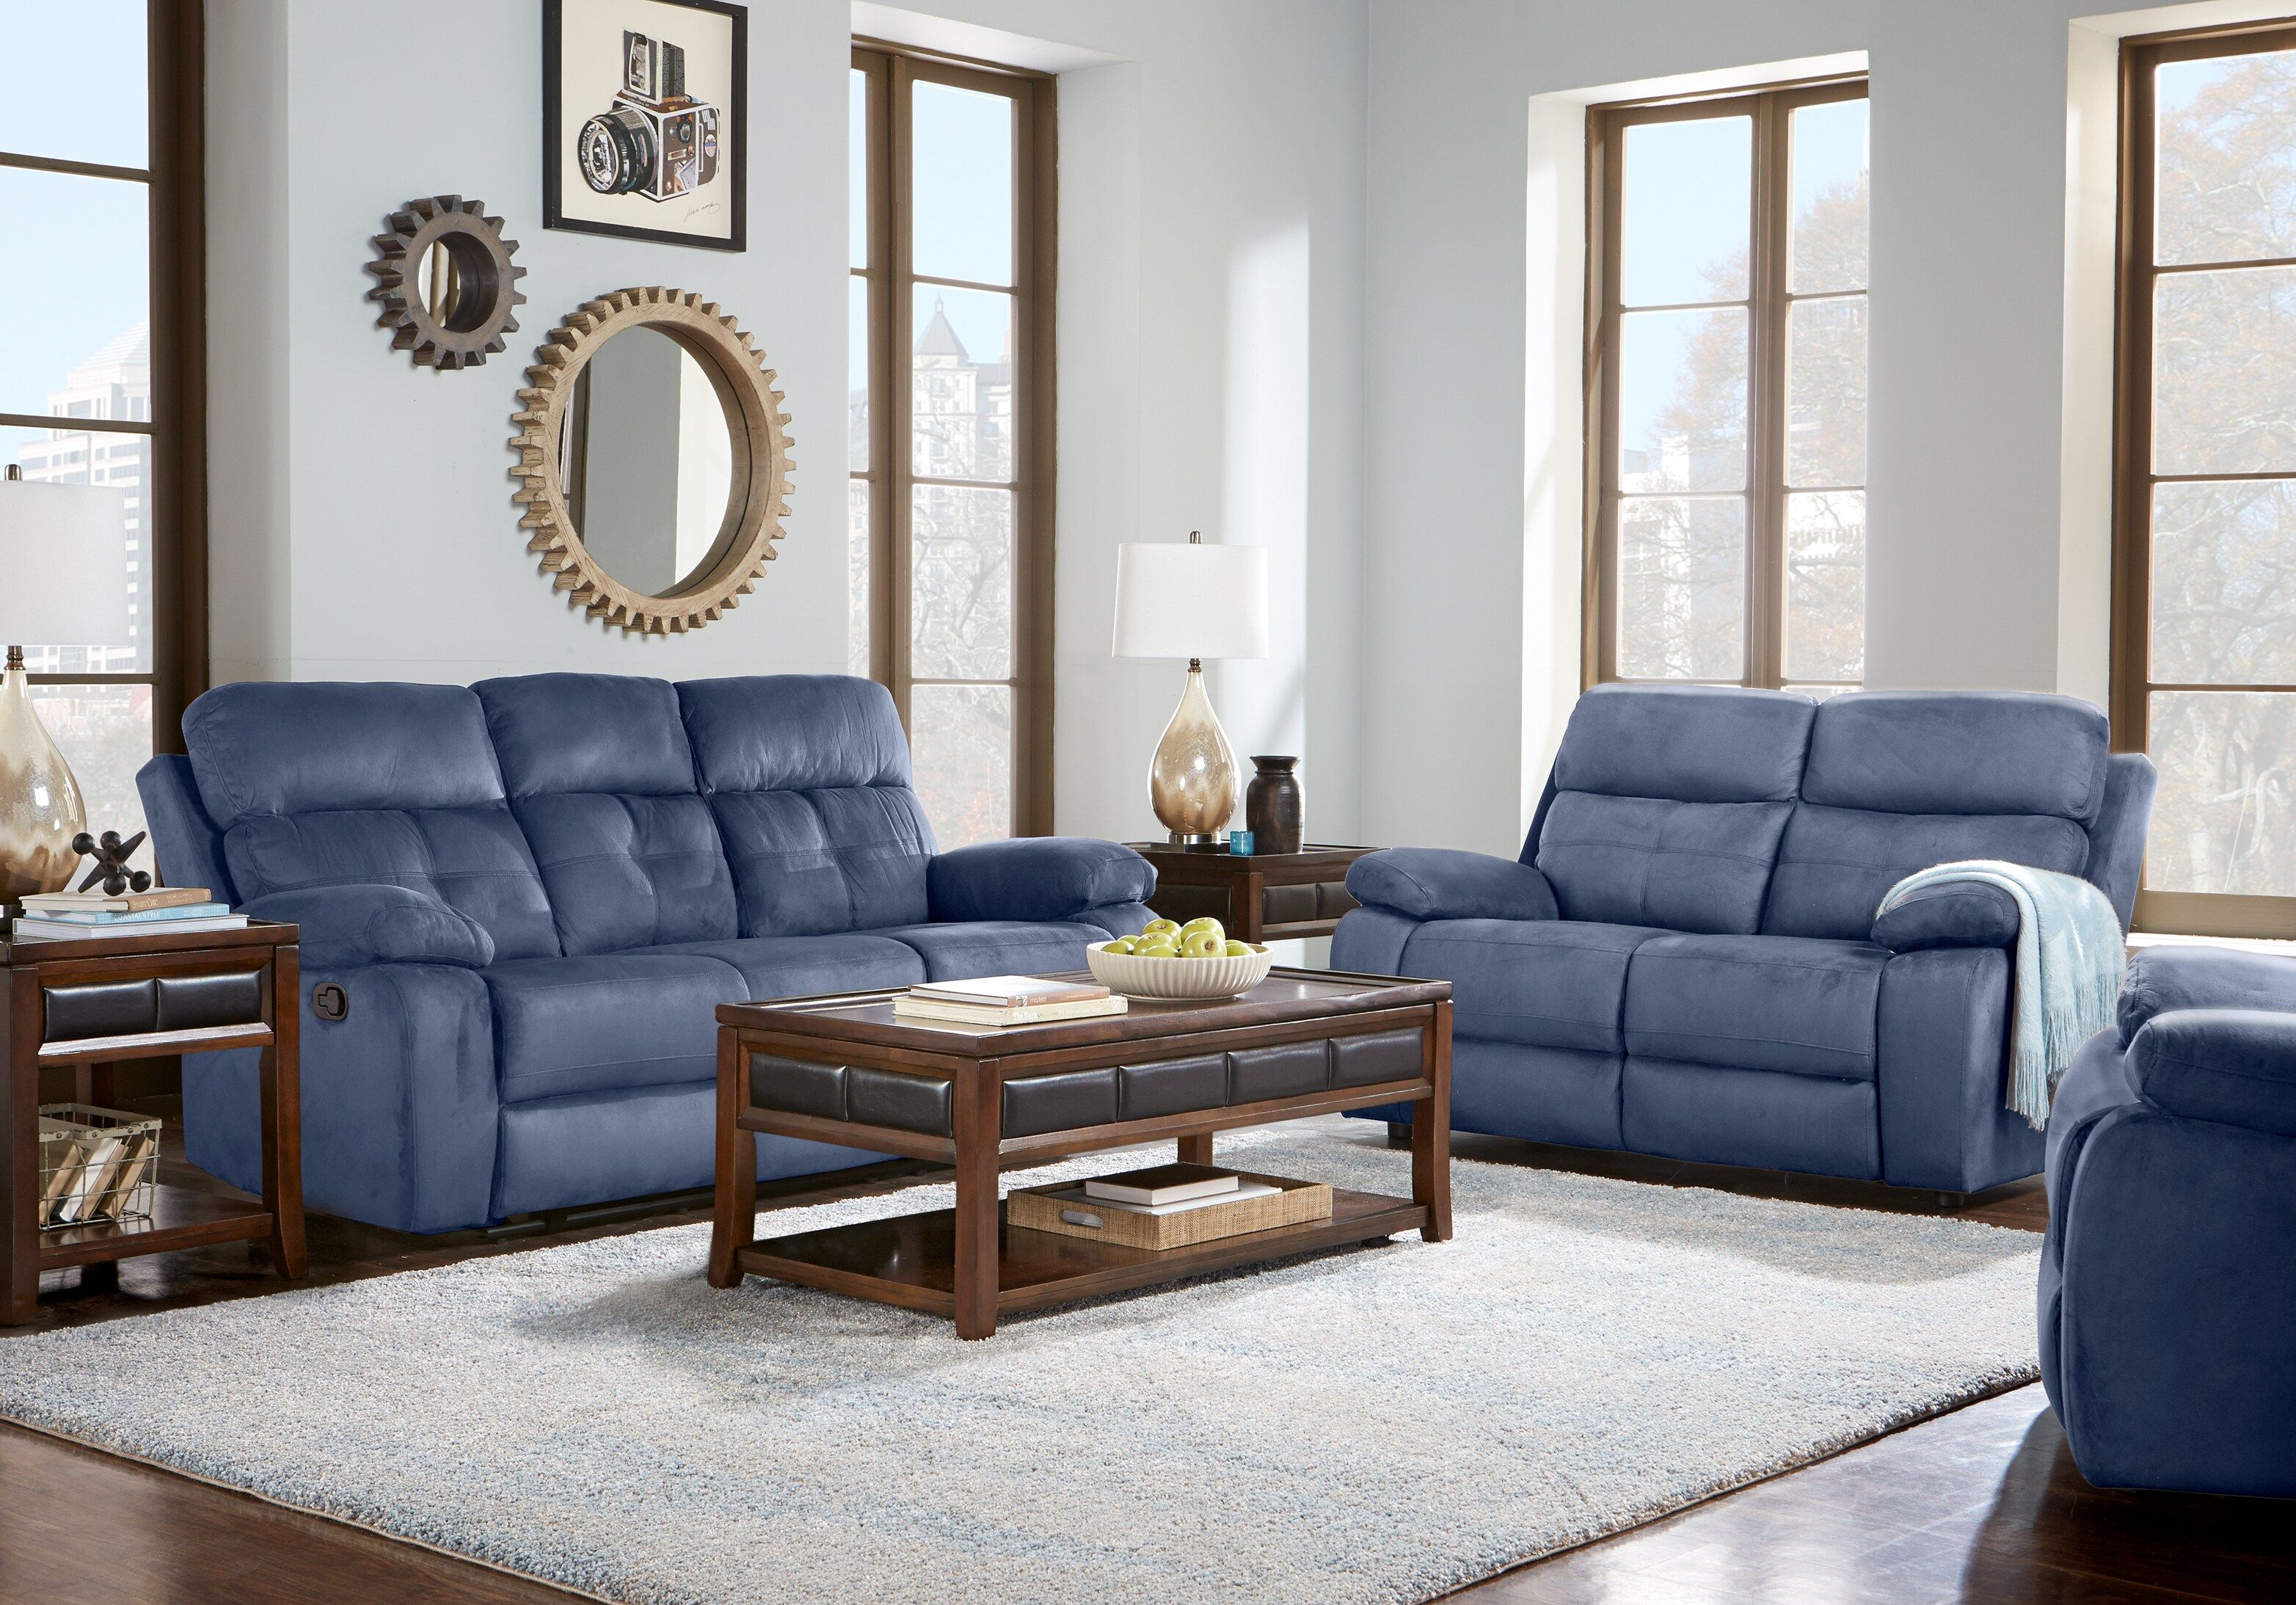 Best Corinne Blue 3 Pc Living Room With Reclining Sofa In 2019 400 x 300